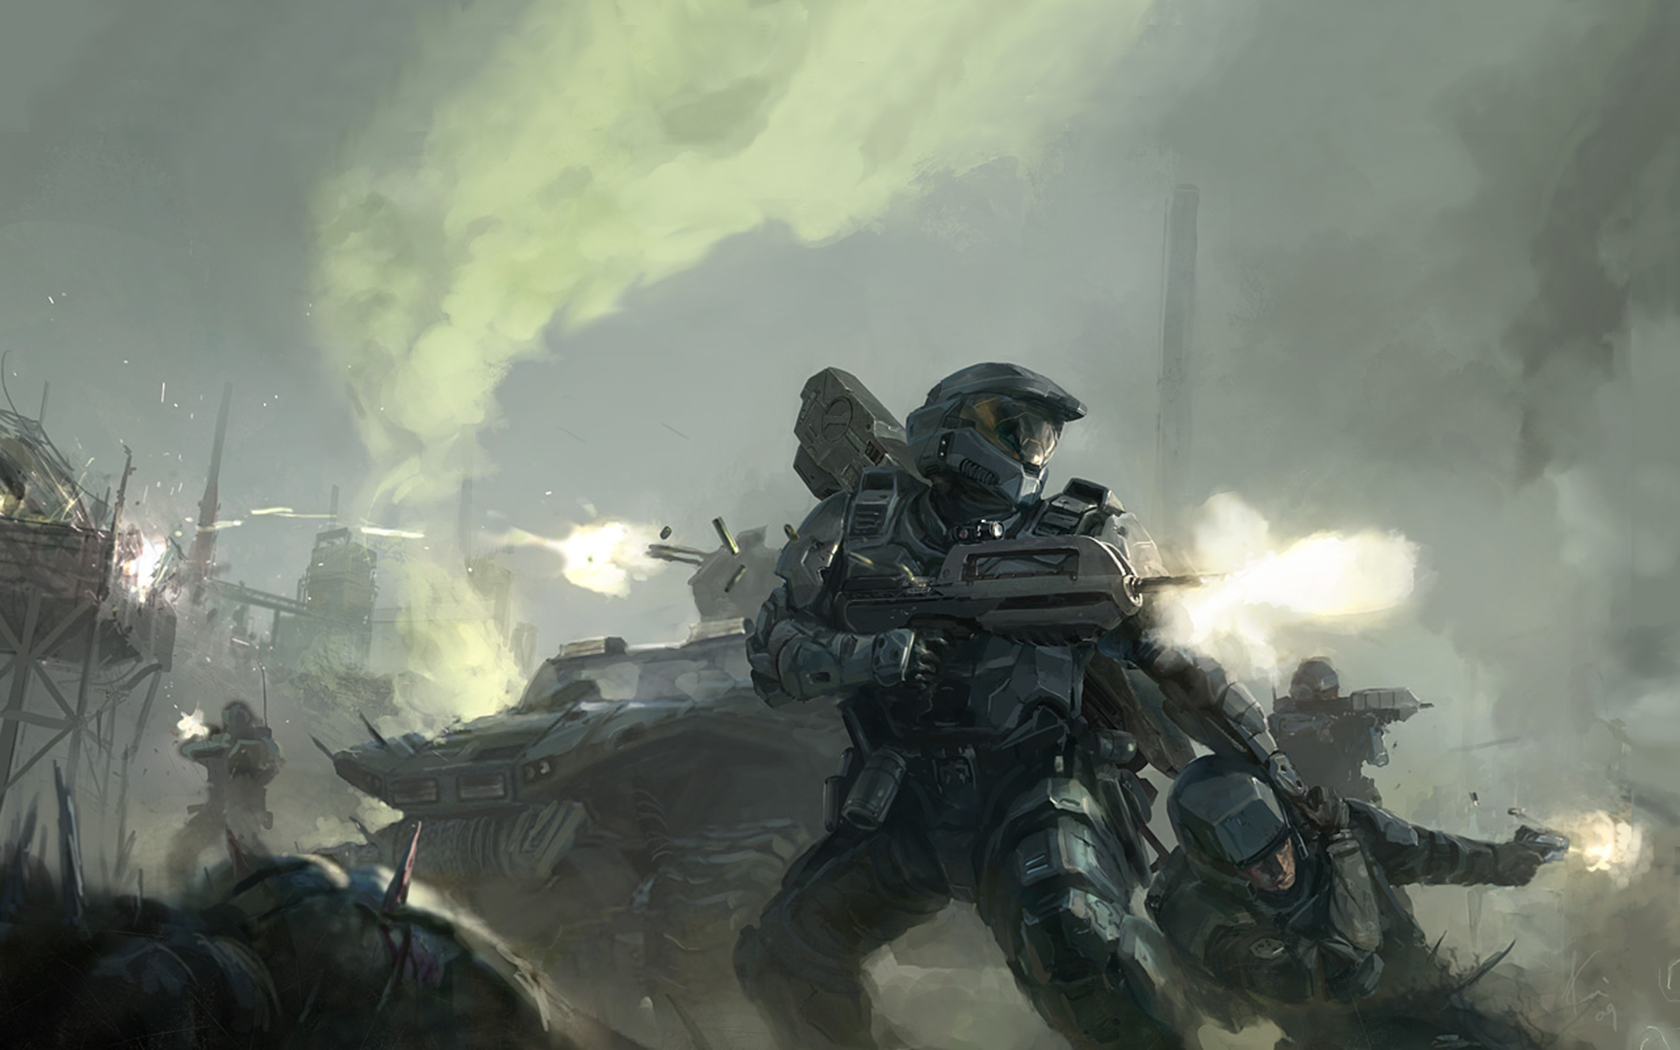 Halo Wallpaper Wallpapers HD Quality 1680x1050